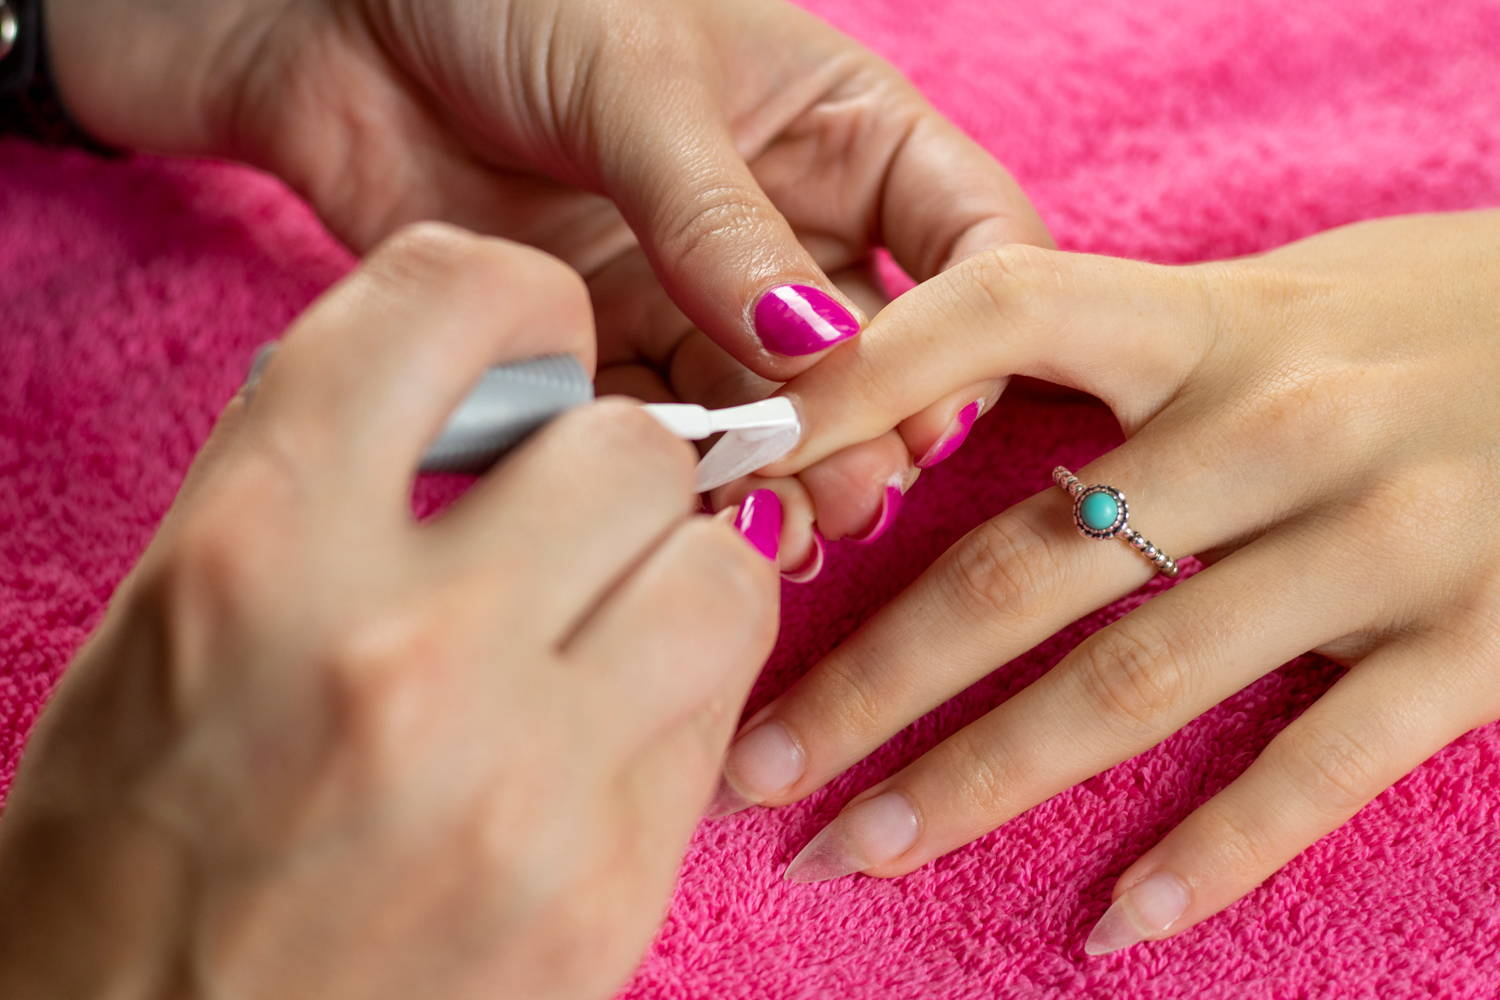 Nail being painted with ORLY GelFX White Tips